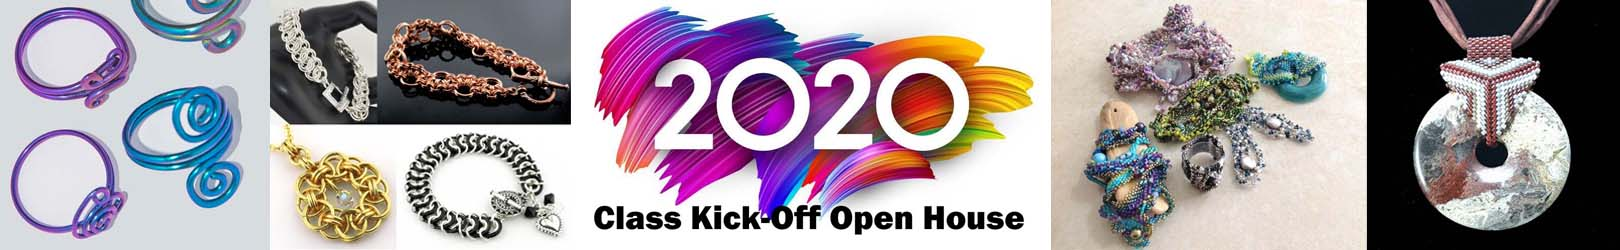 2020 Classes are on the Horizon!